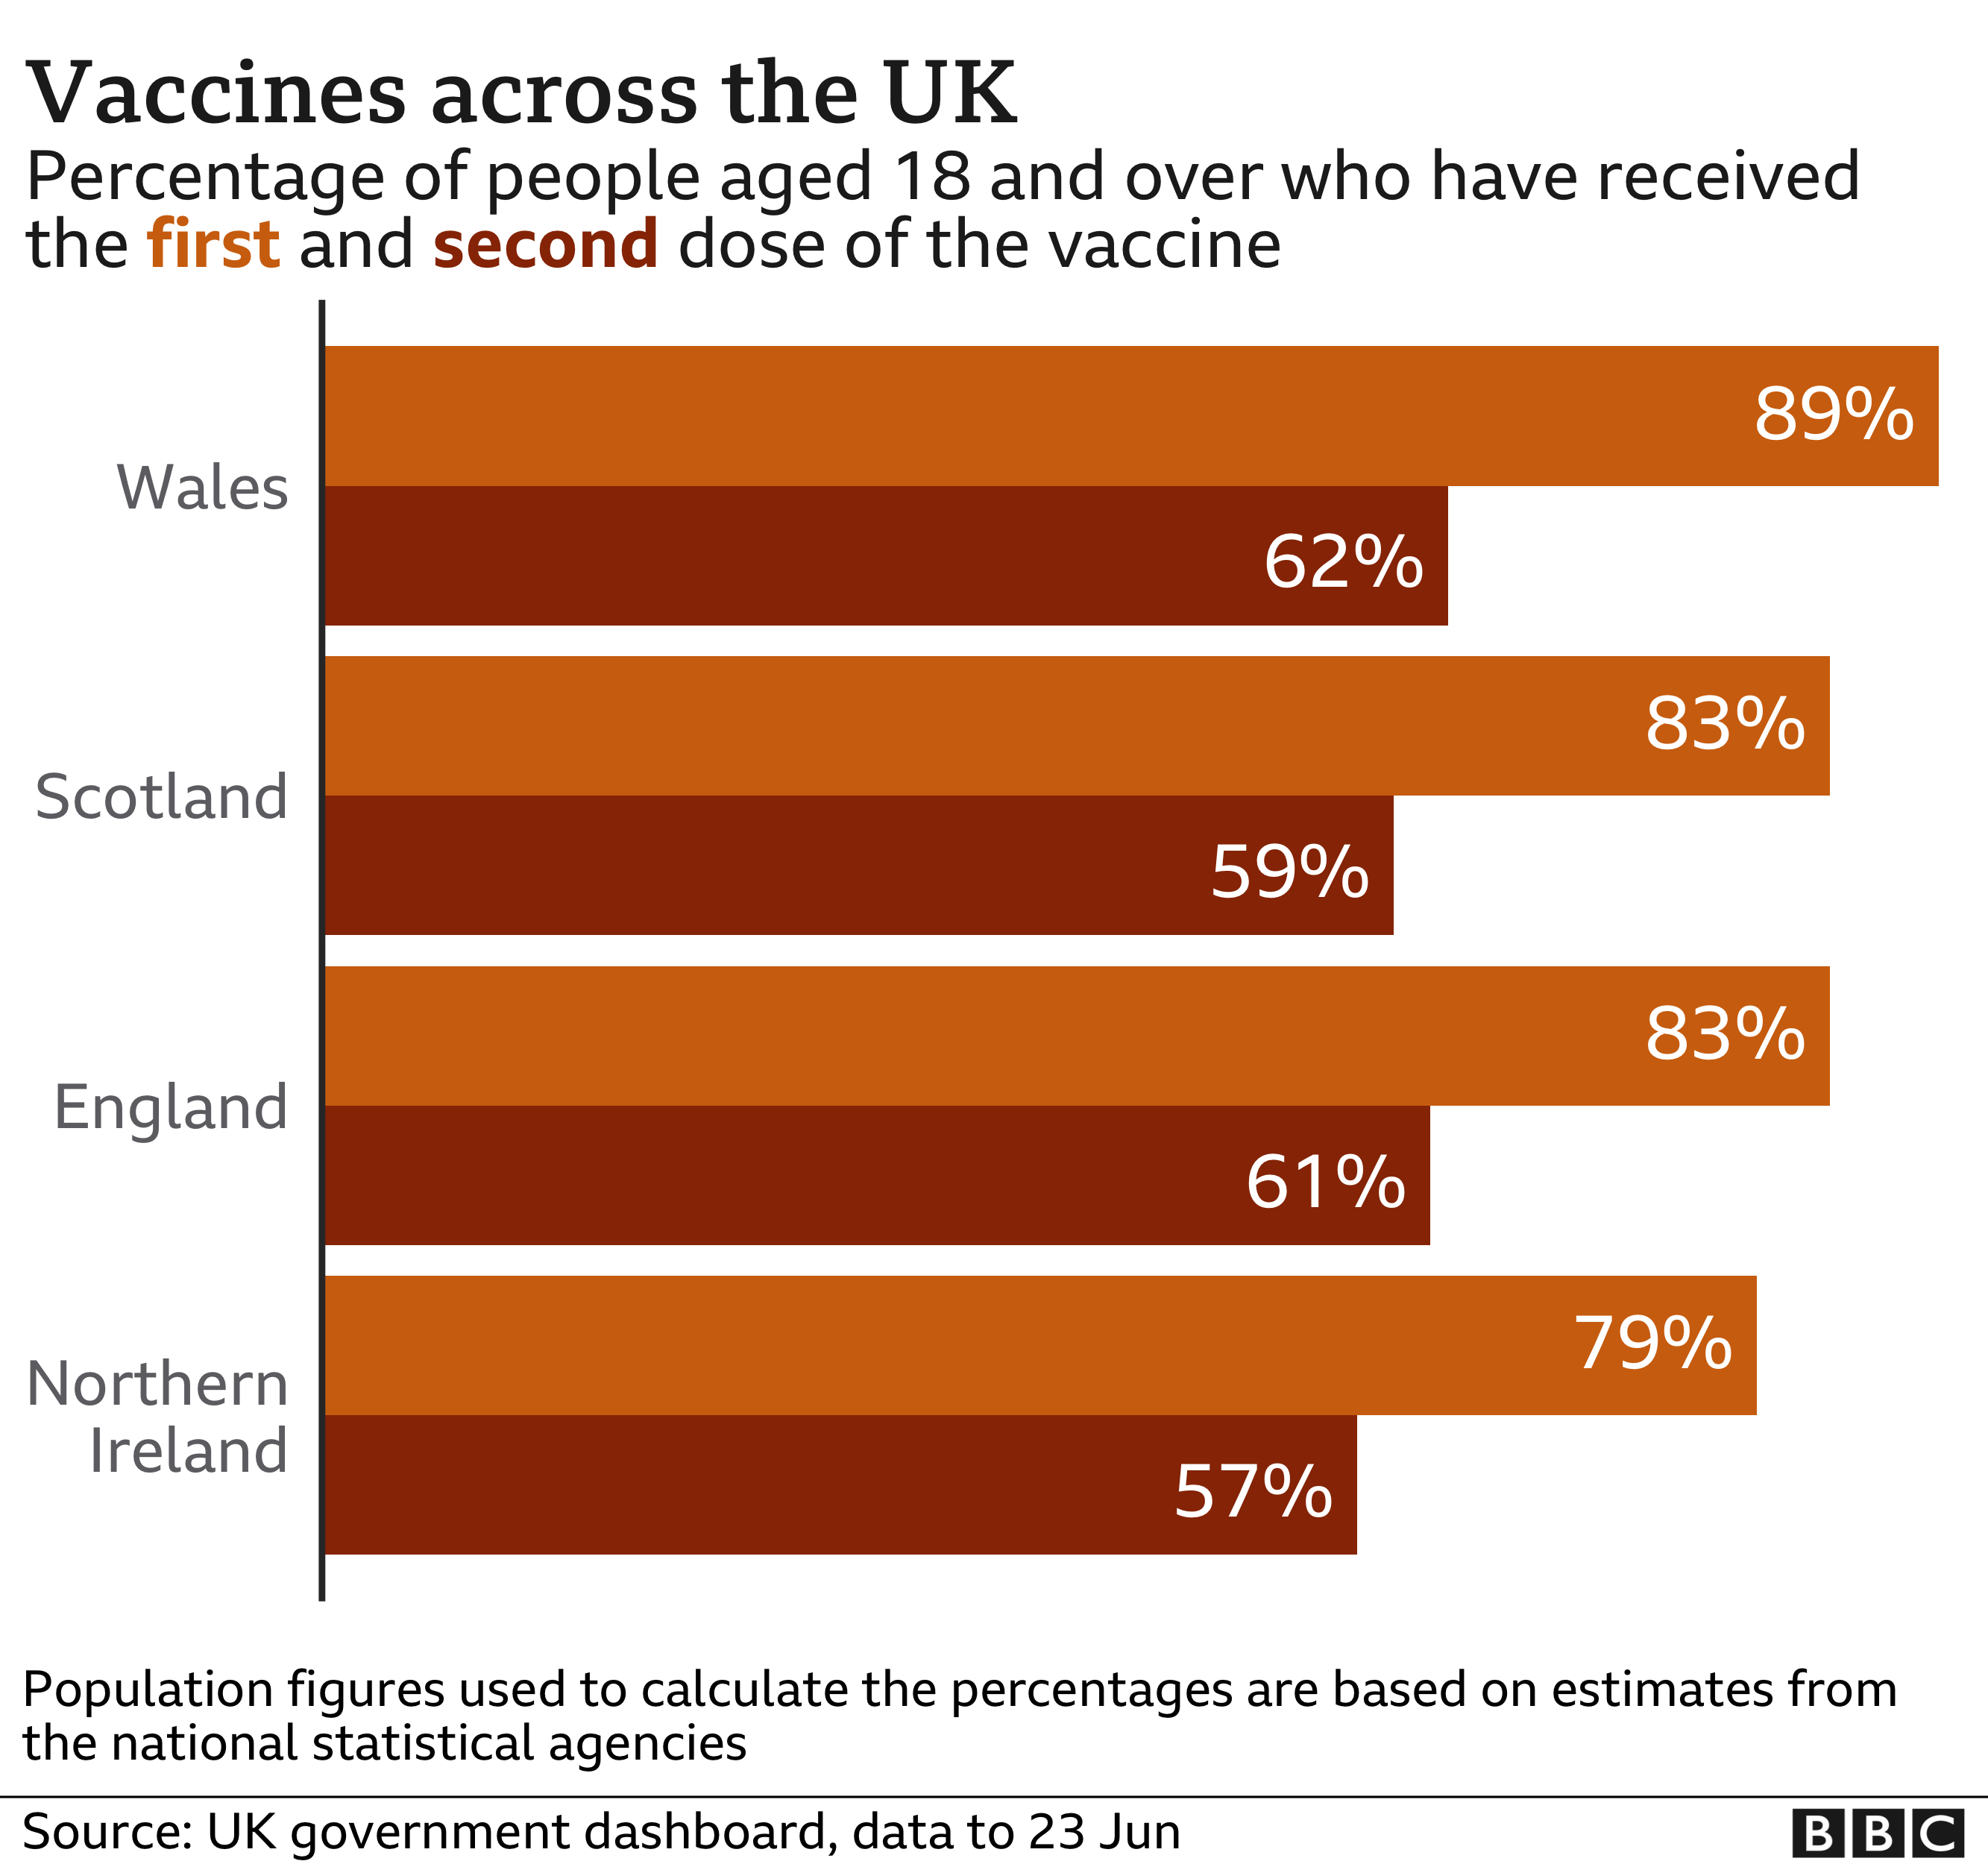 Chart of vaccine take up by UK nation - 89% of those aged 18 and over in Wales have had at least one dose, compared with 79% in Northern Ireland